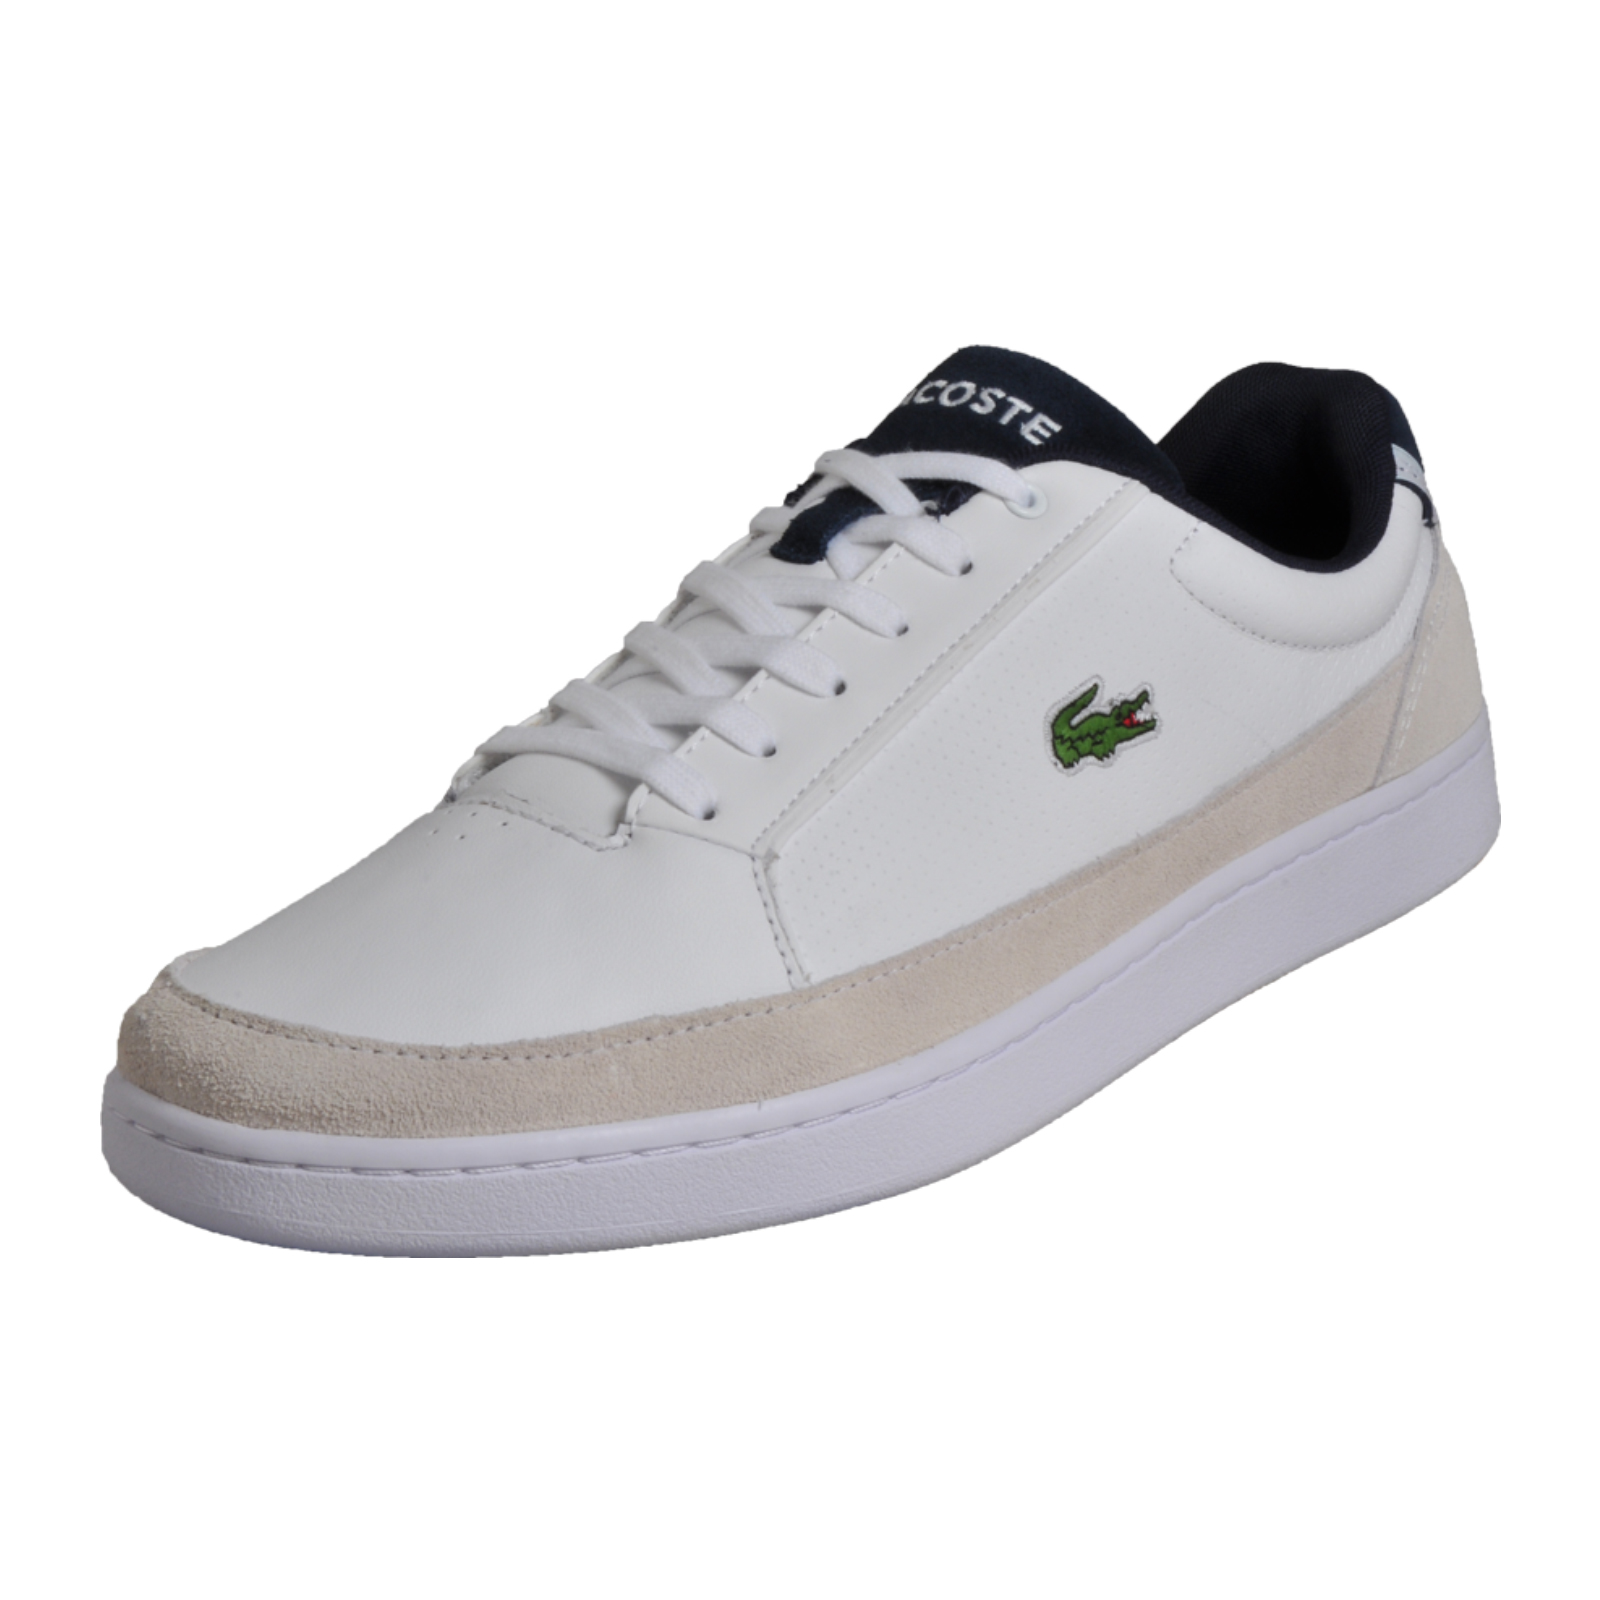 47bd13bc2 Details about Lacoste Setplay 117 Men s Classic Designer Leather Retro  Trainers White